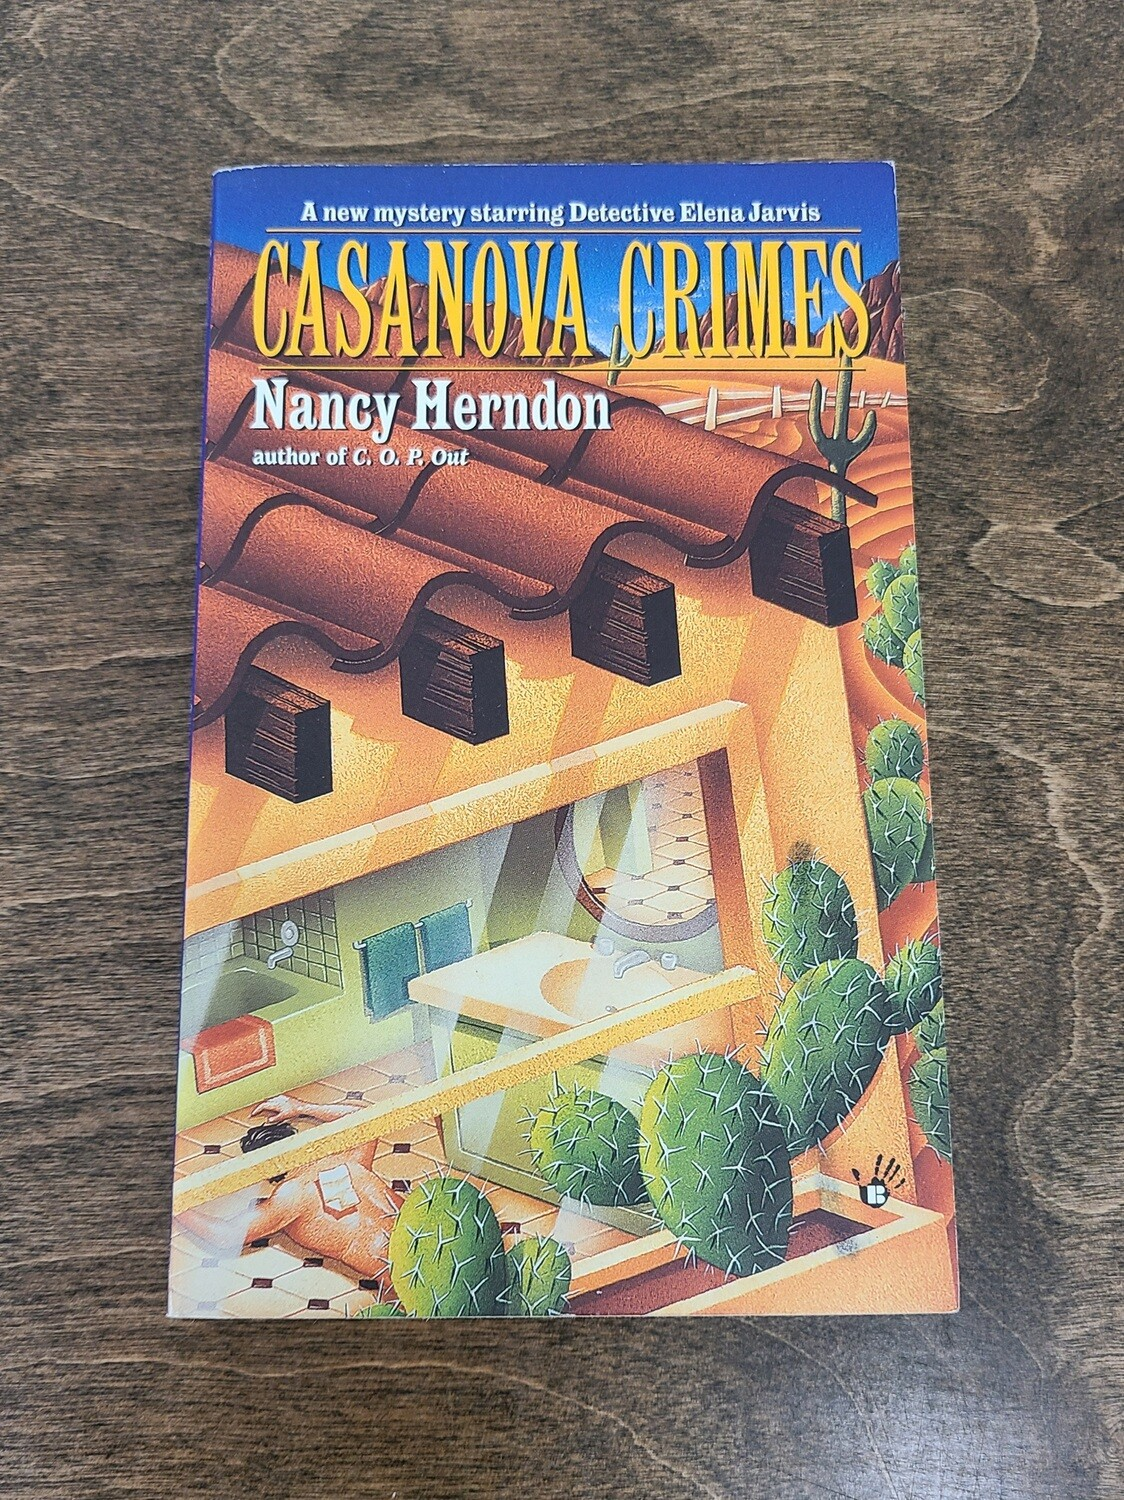 Casanova Crimes by Nancy Herndon